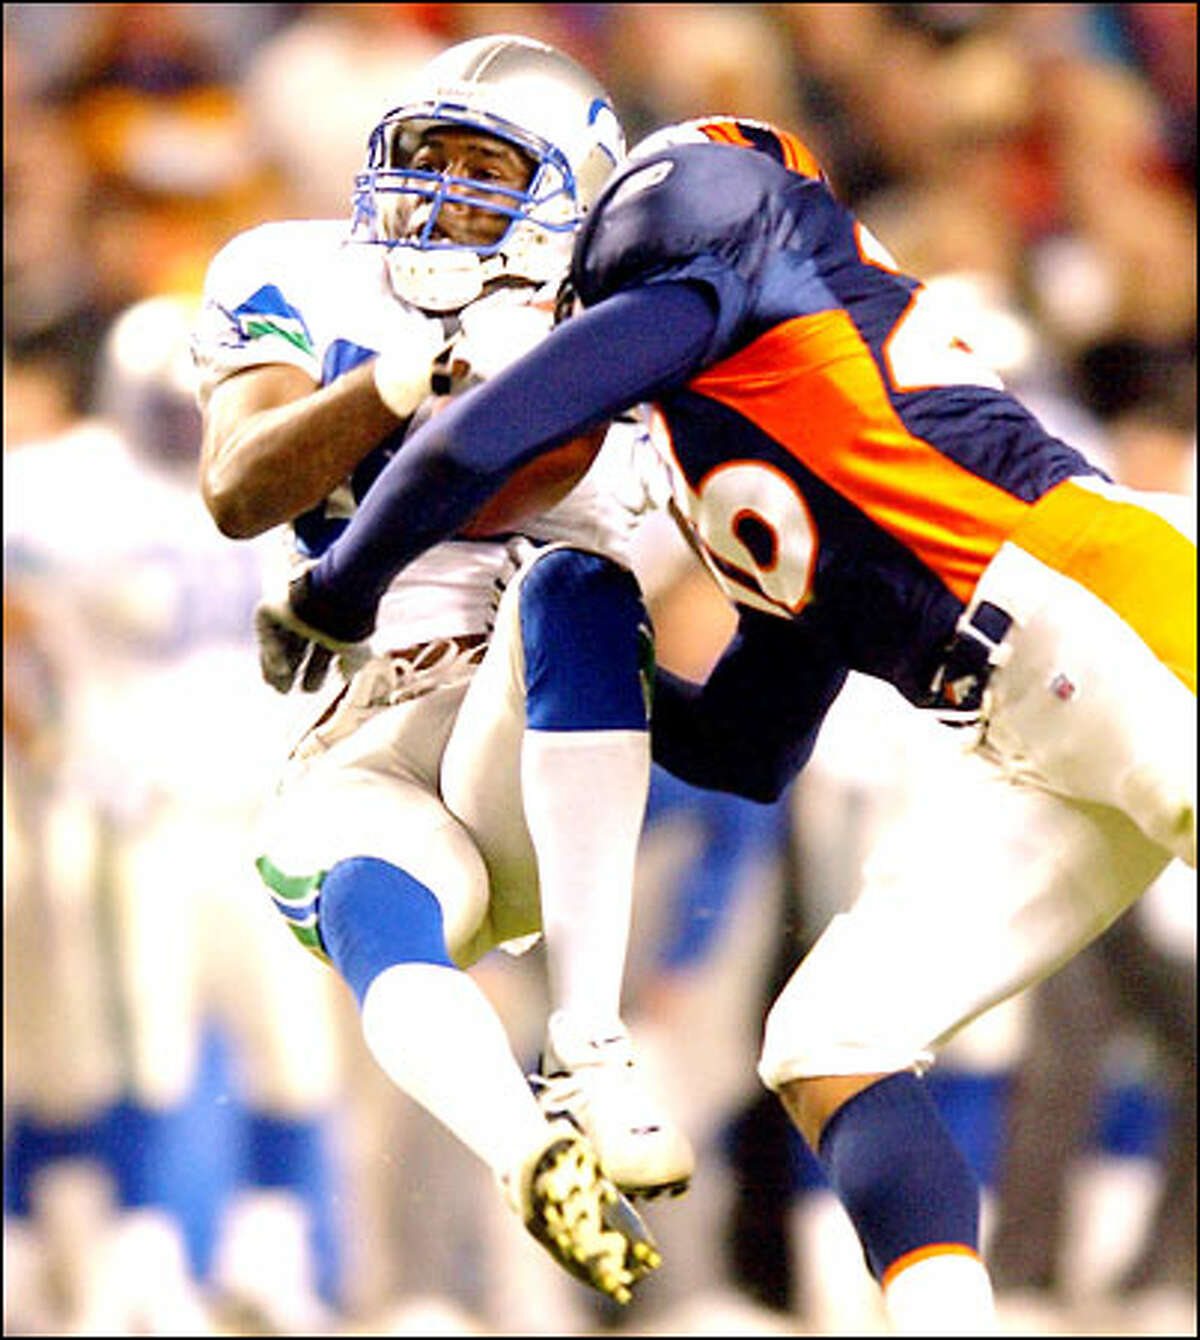 Wide receiver Darrell Jackson takes a hard hit from Broncos safety Eric Brown after making a 32-yard reception in the second quarter. Jackson scored the Seahawks' only touchdown.